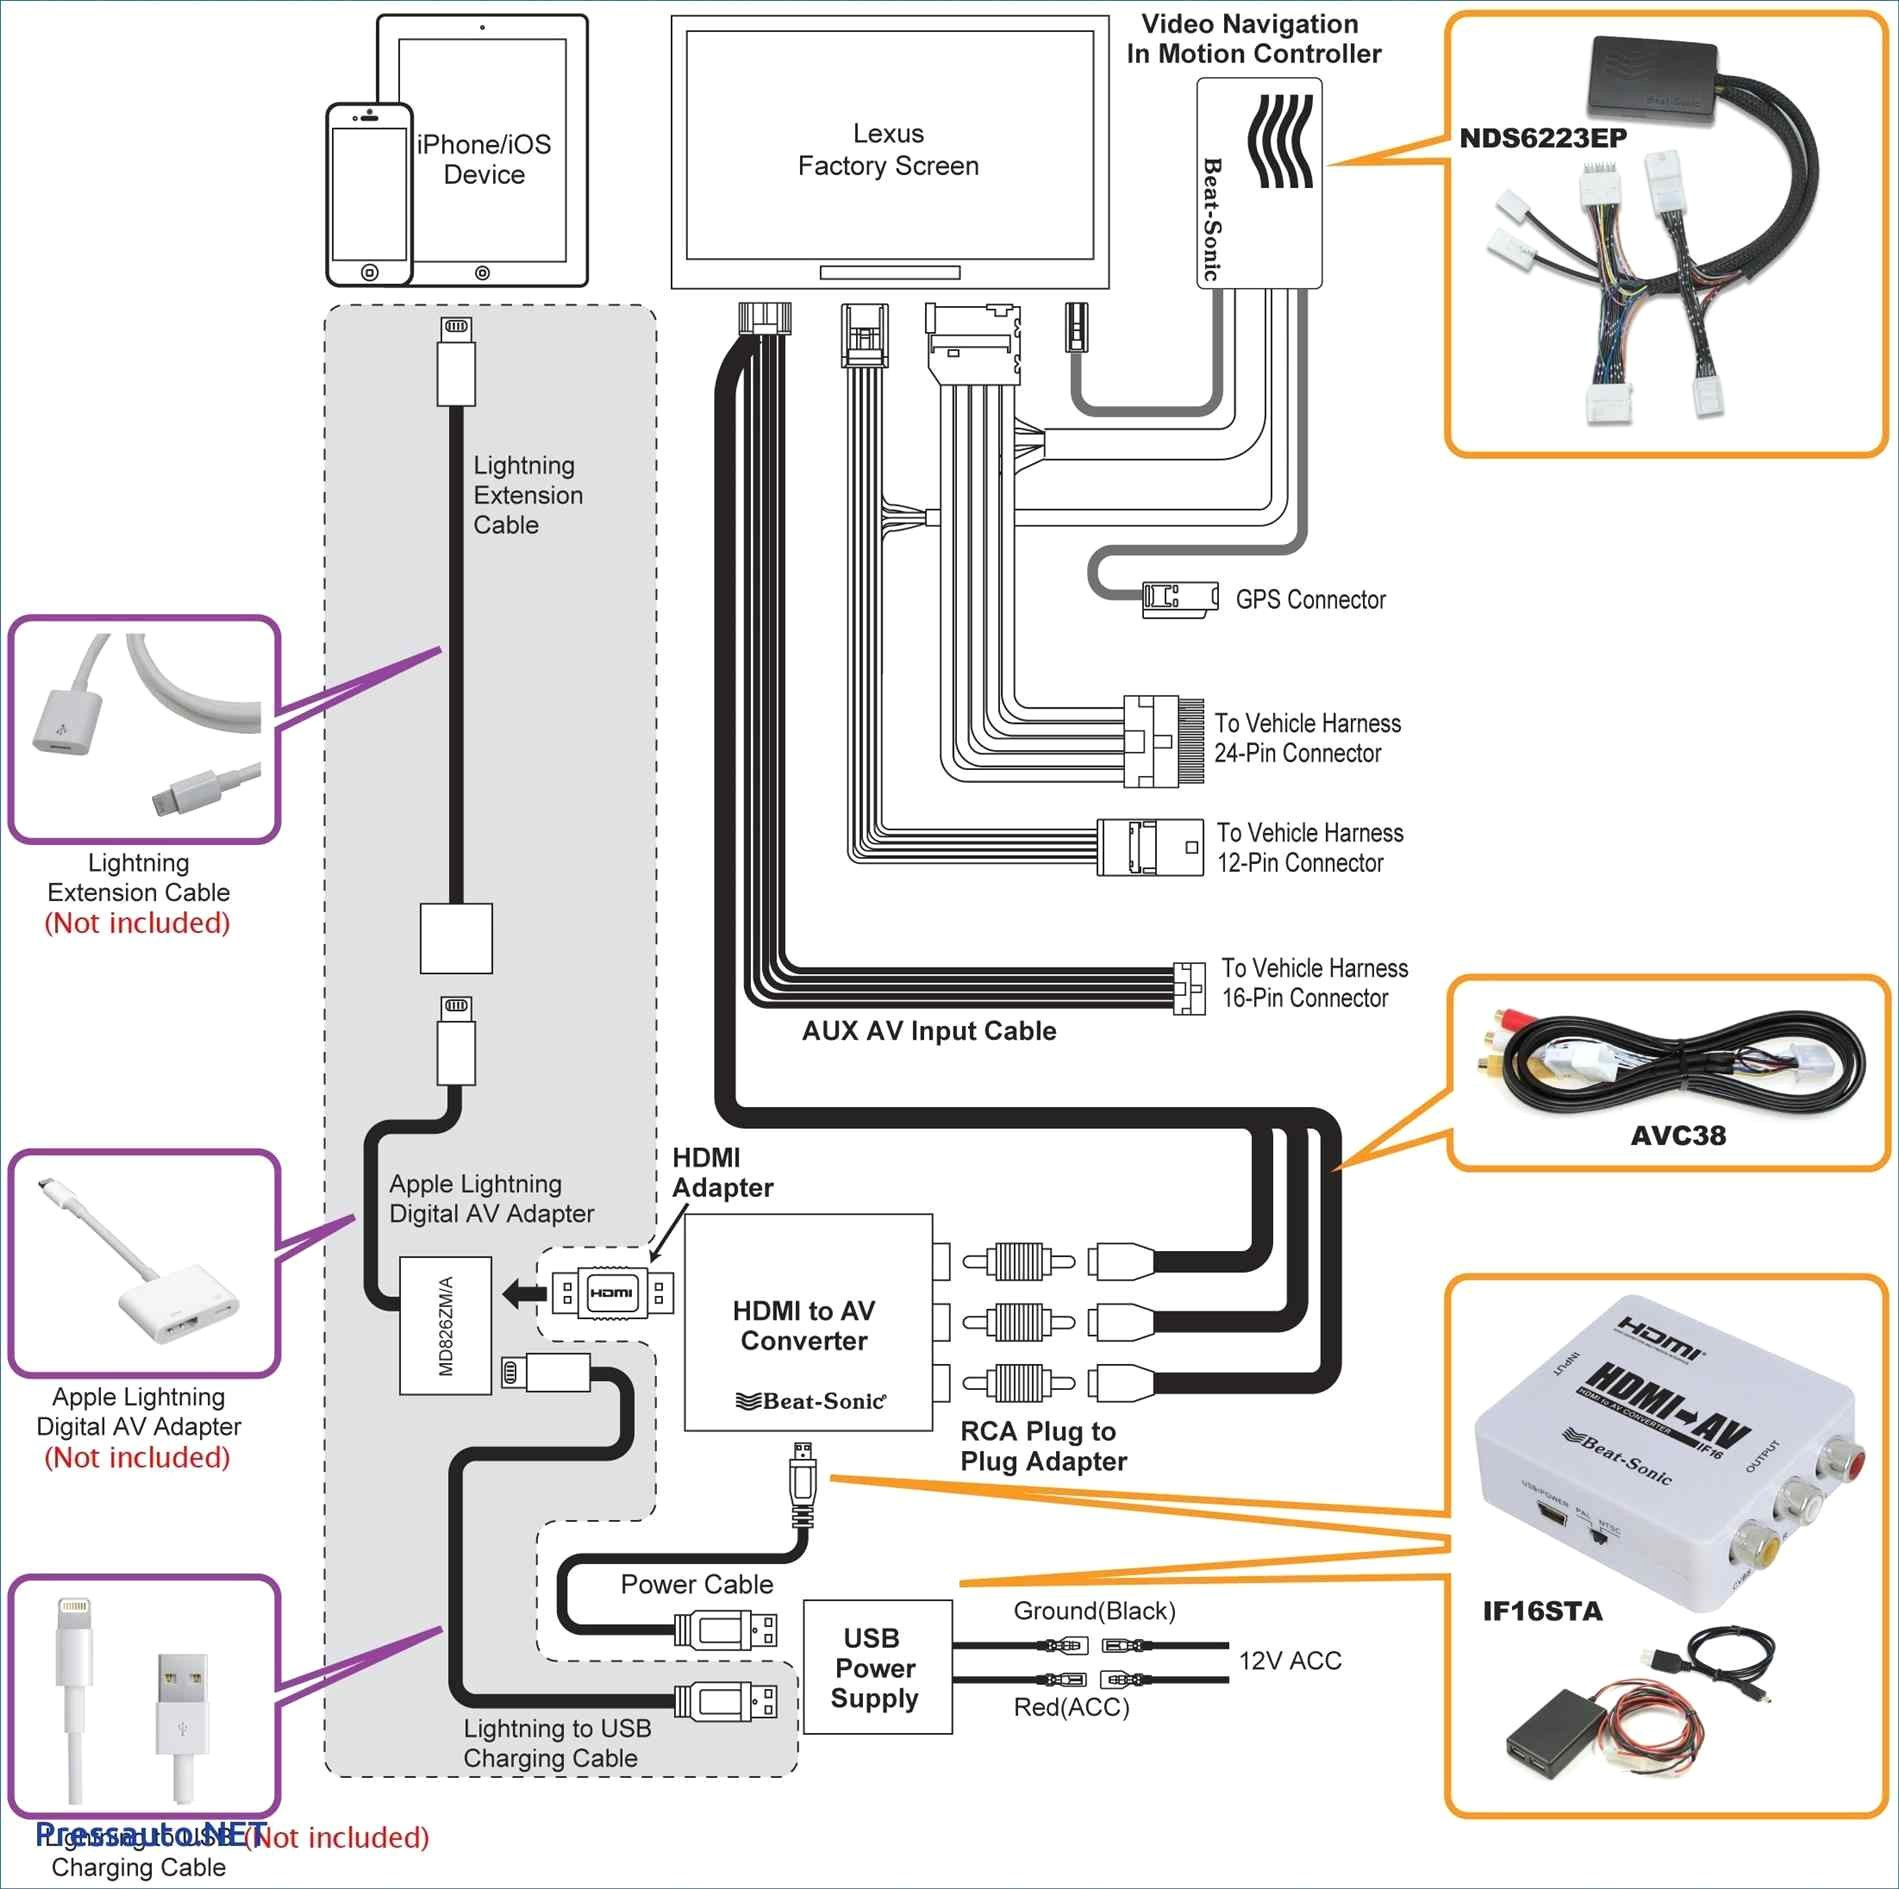 Usb Sata Data Cable Wiring Diagram -Alfa 156 Workshop Manual Free Download  | Begeboy Wiring Diagram Source